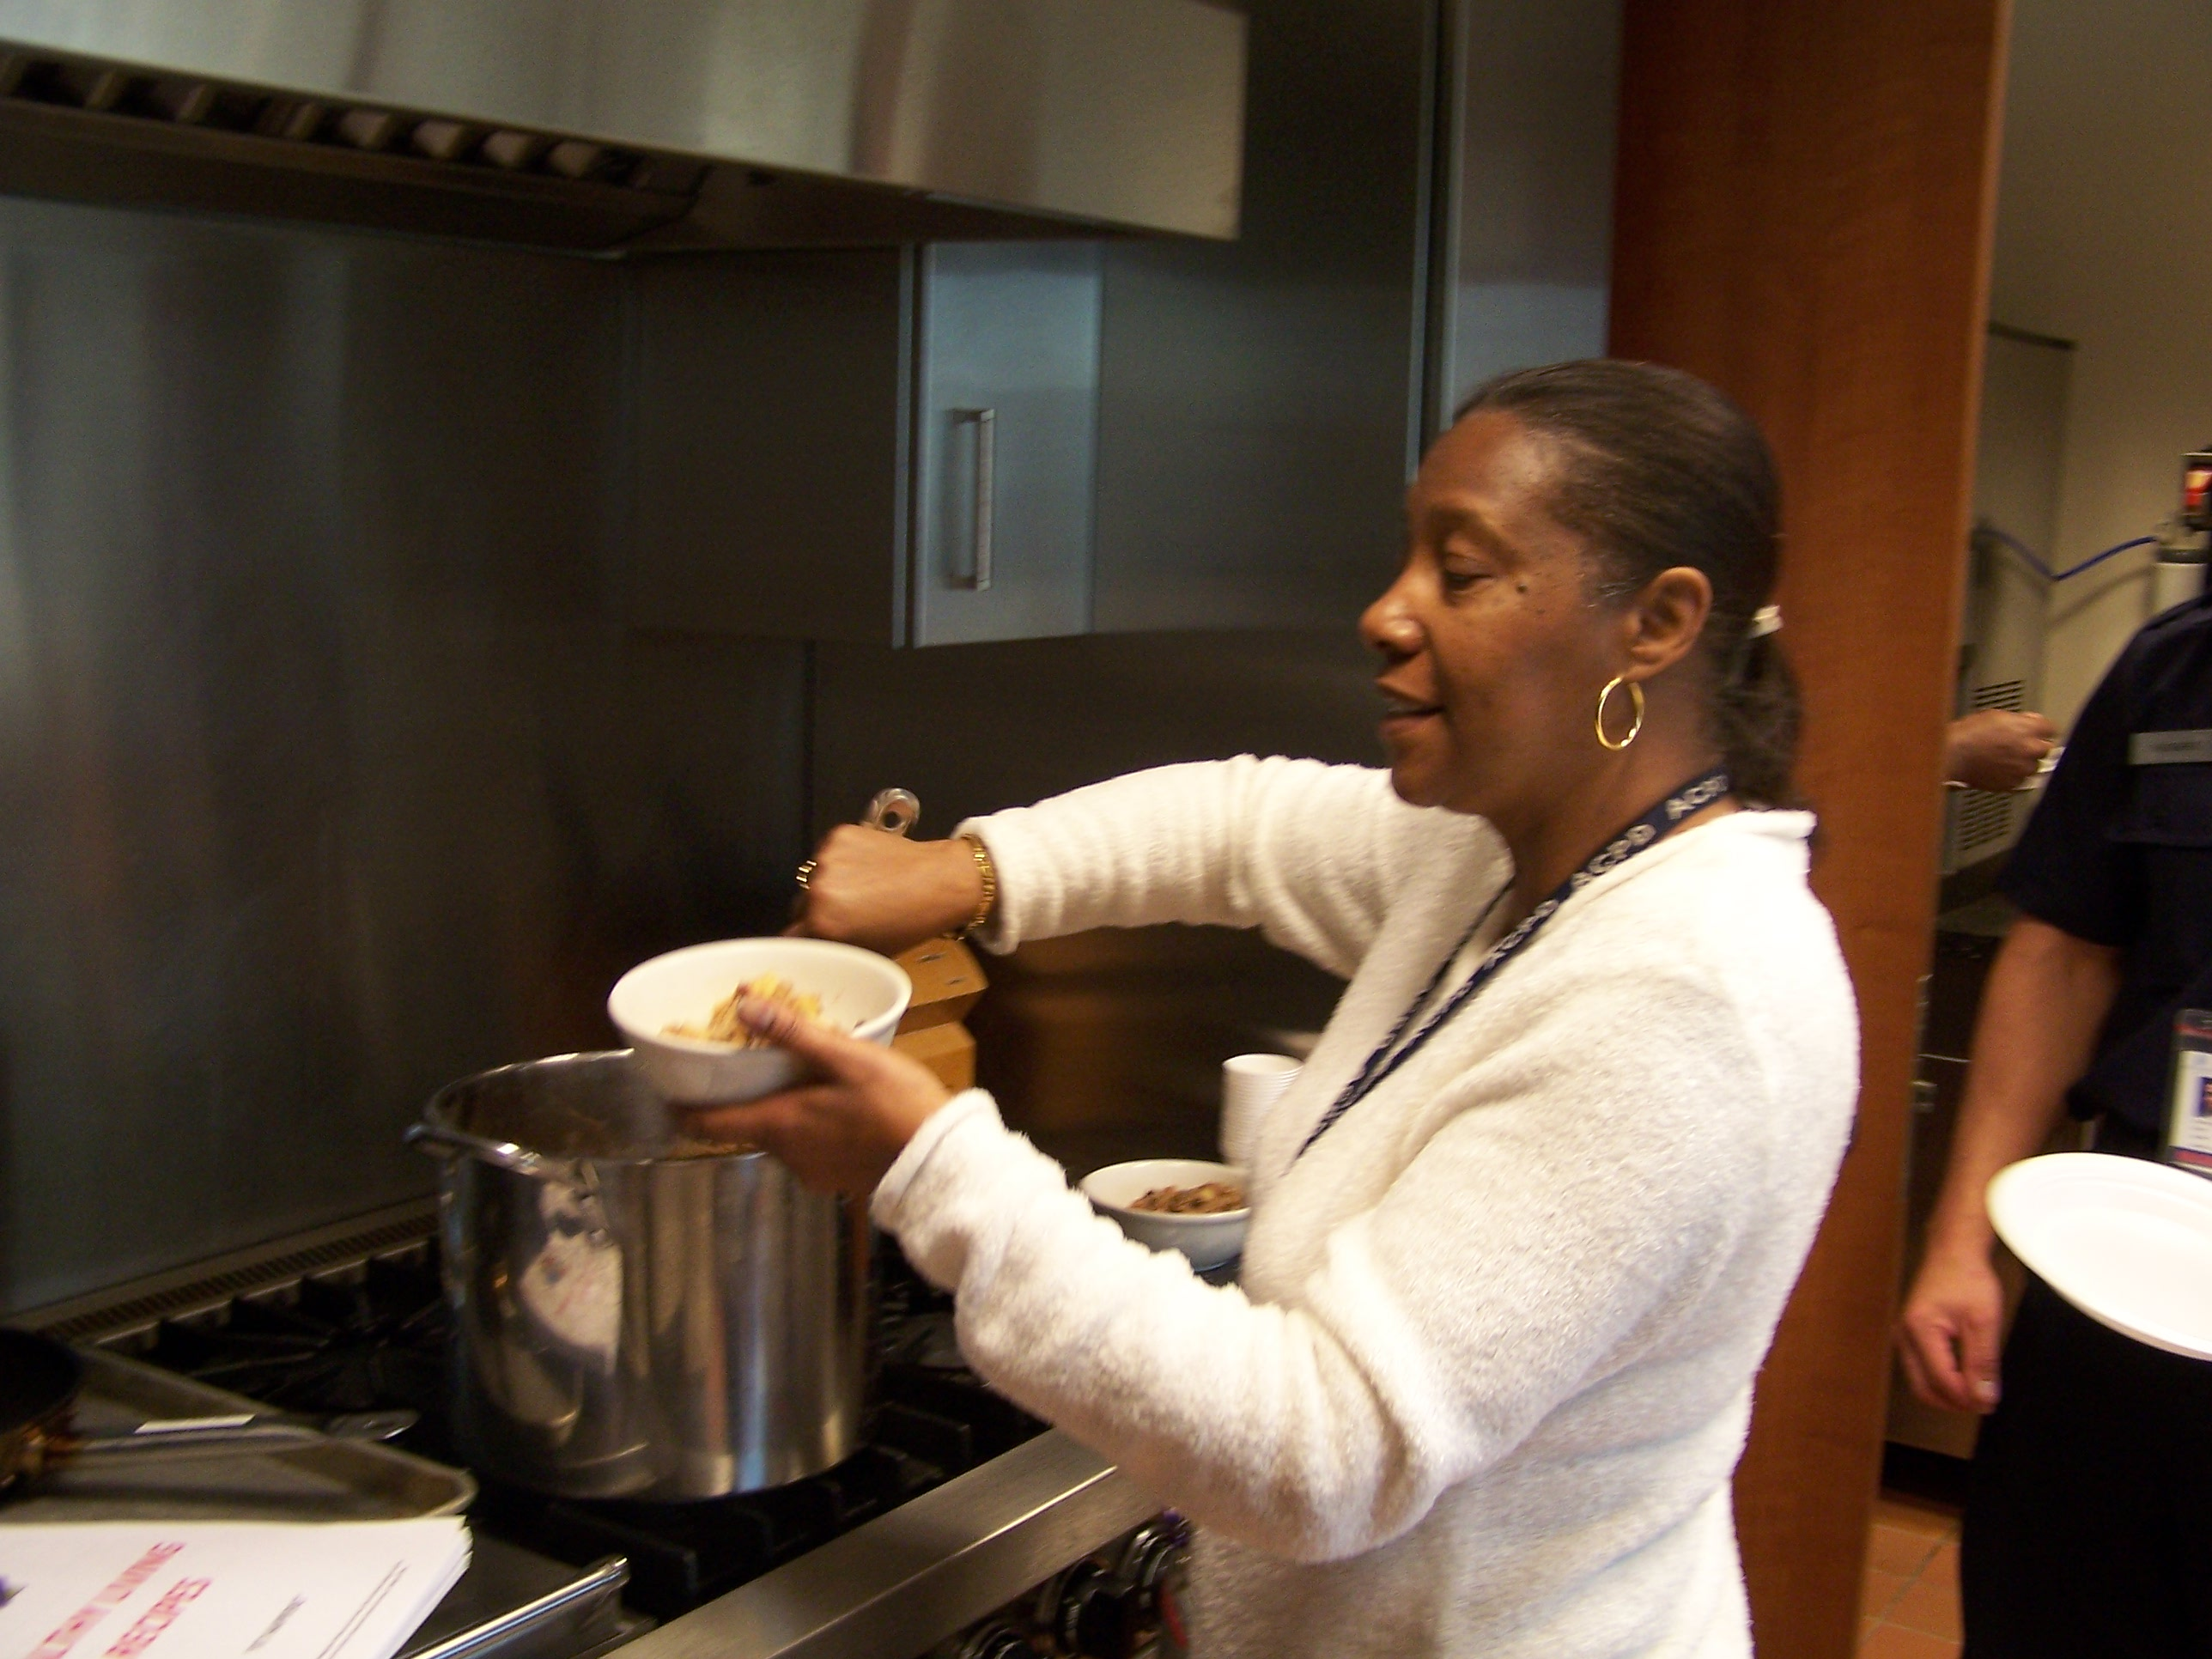 A staff member helps herself to Homemade Fruity Oatmeal.